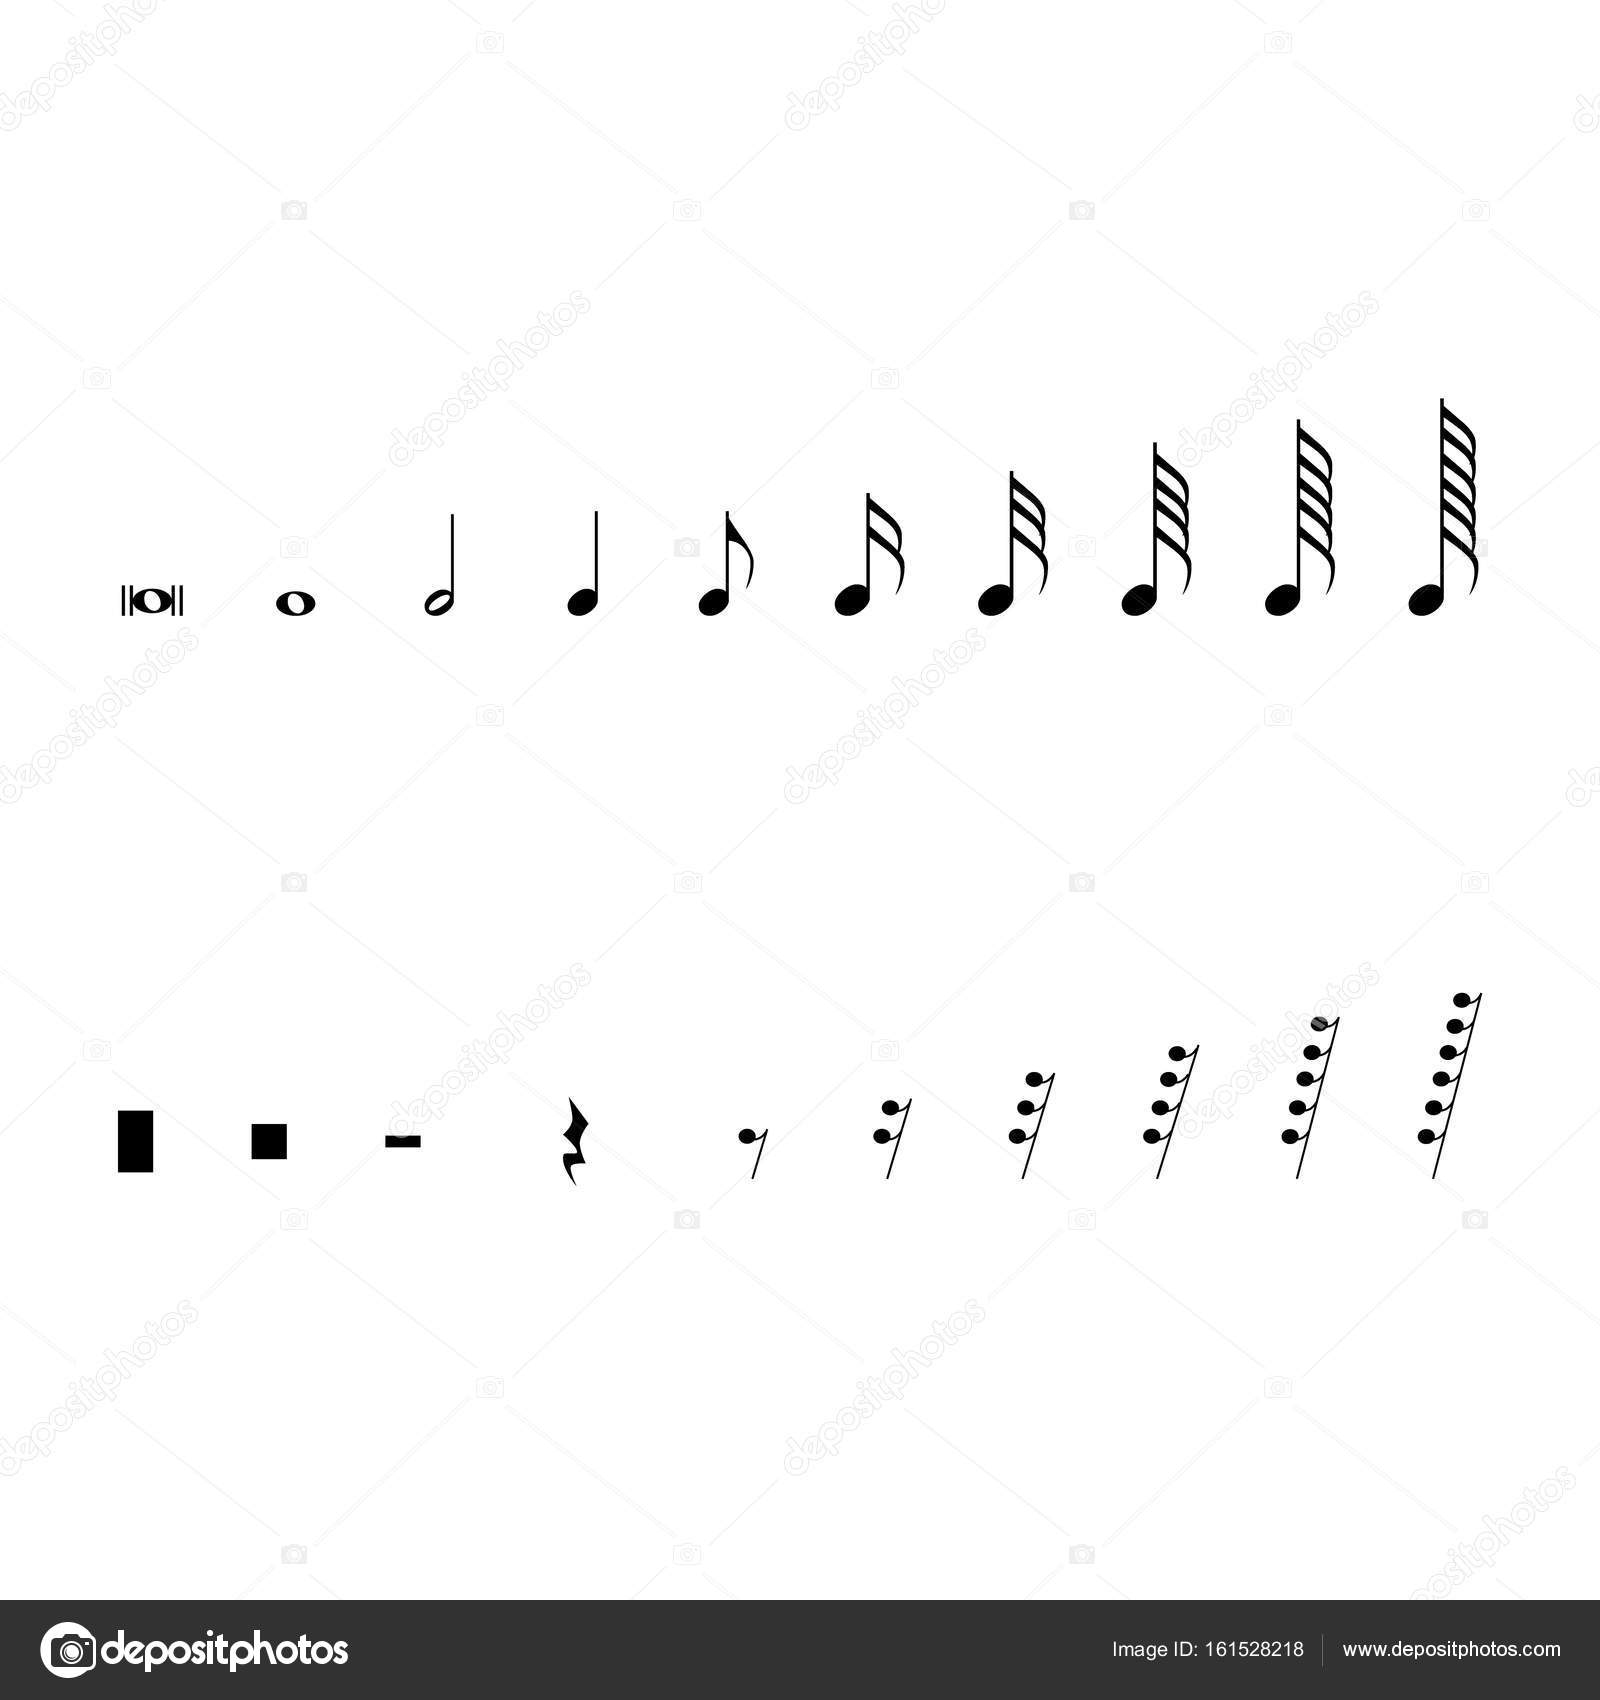 Musical Notation Symbols Stock Photo Viktorijareut 161528218